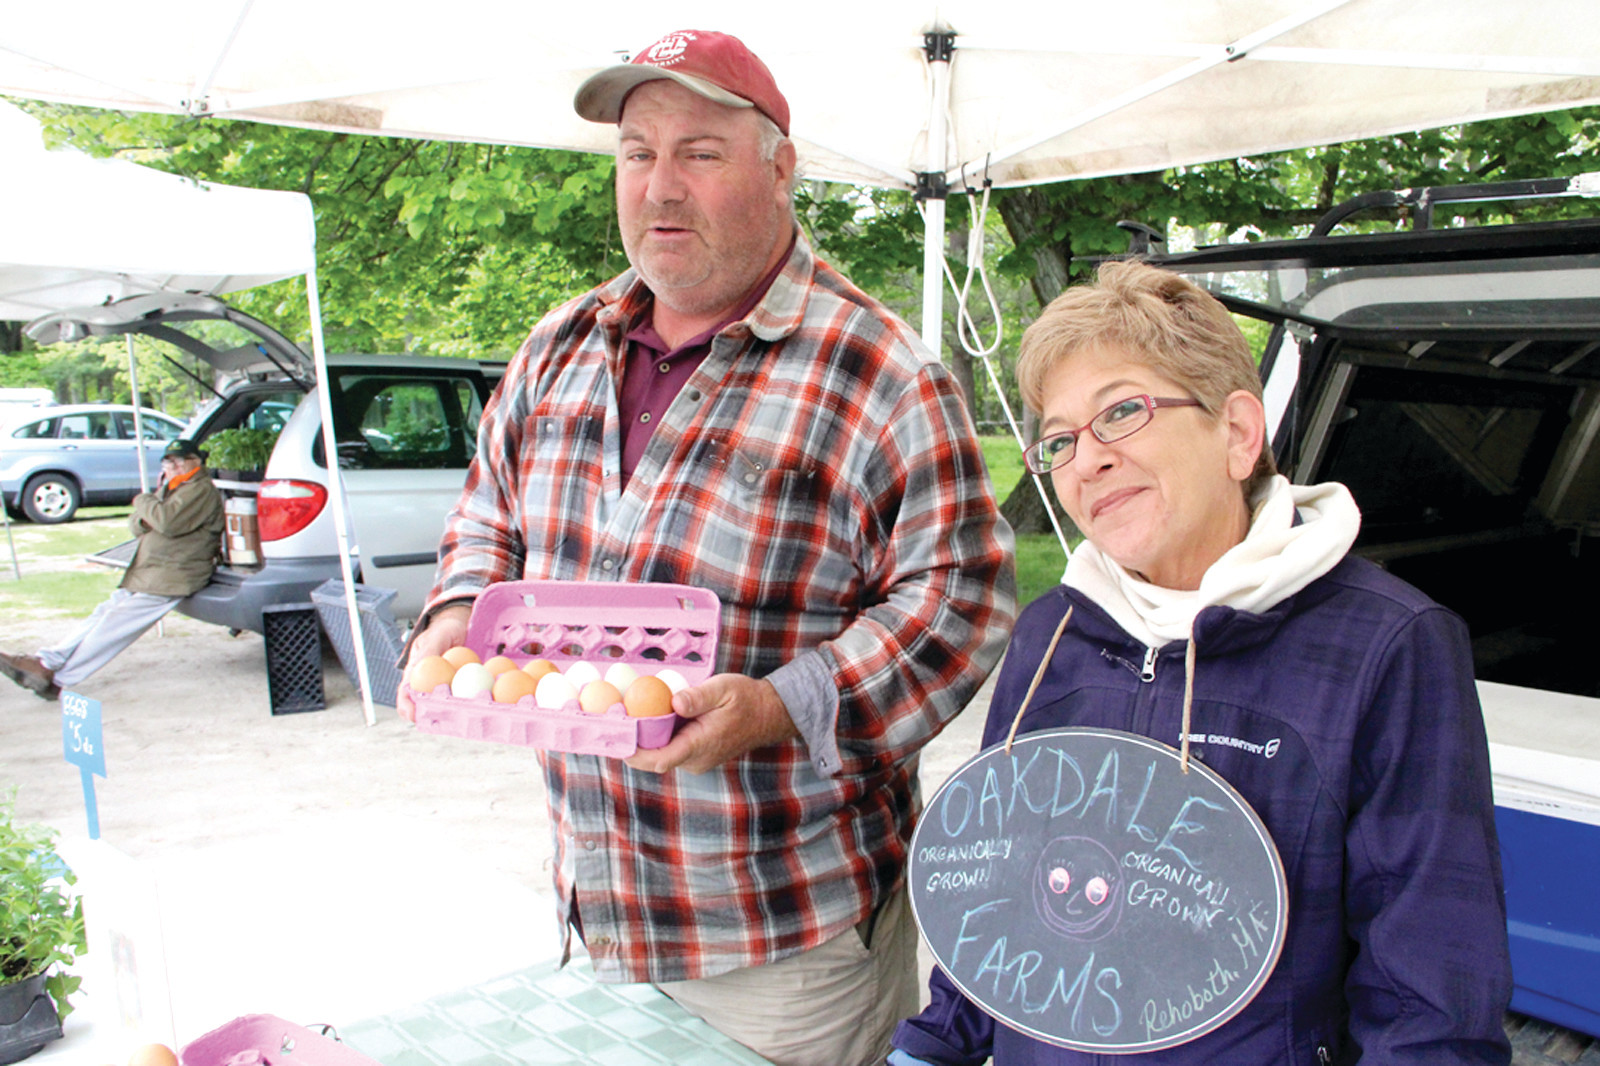 BLUE EGGS: Mike Smith from Oakdale Farms in Rehoboth says there's a demand for blue eggs and the farm has them. Smith said there's been a resurgence in locally grown produce. He and Lois Payton are pictured on a recent Friday at the Goddard Park Farmers' Market